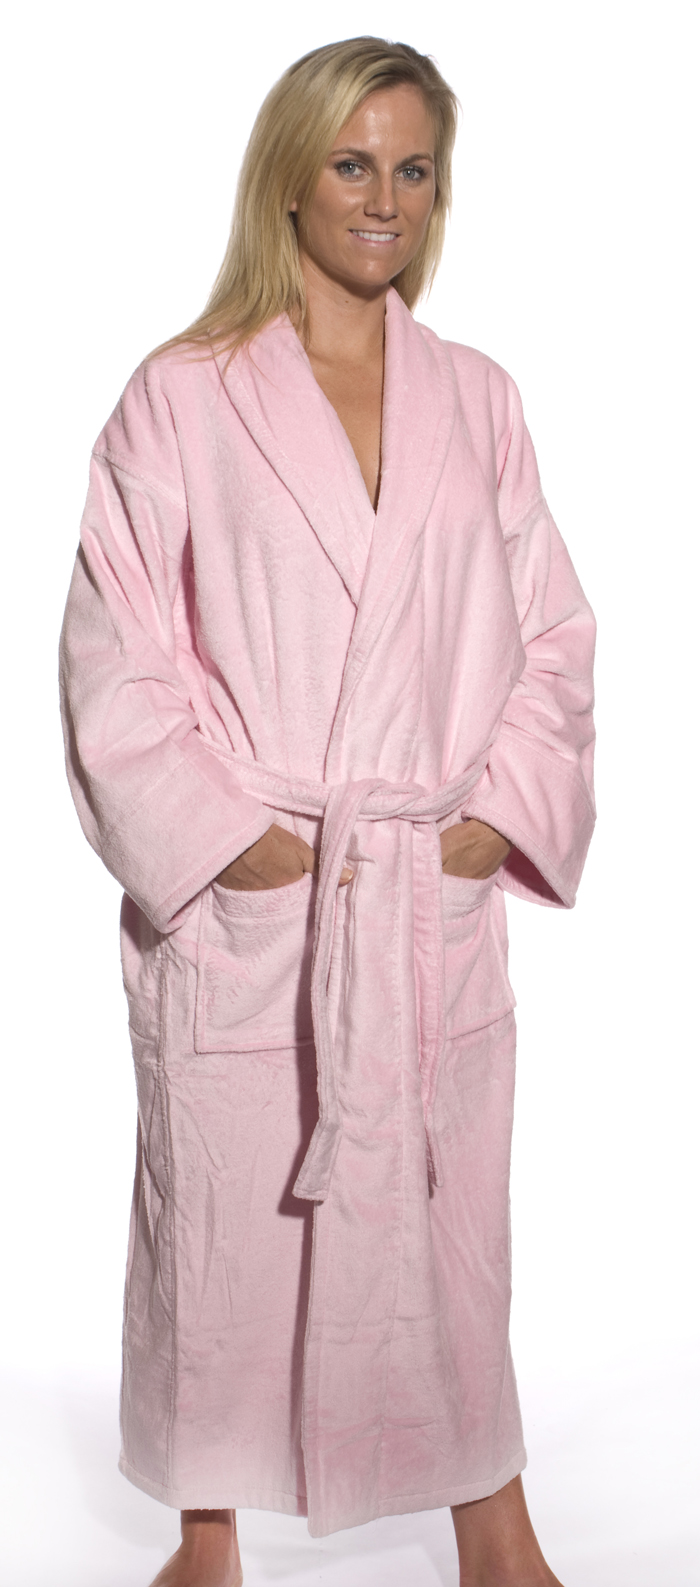 bath robes for girls, mens hooded bathrobe, mens 3xl terry cloth bathrobe with hood, chenille bathrobes for women